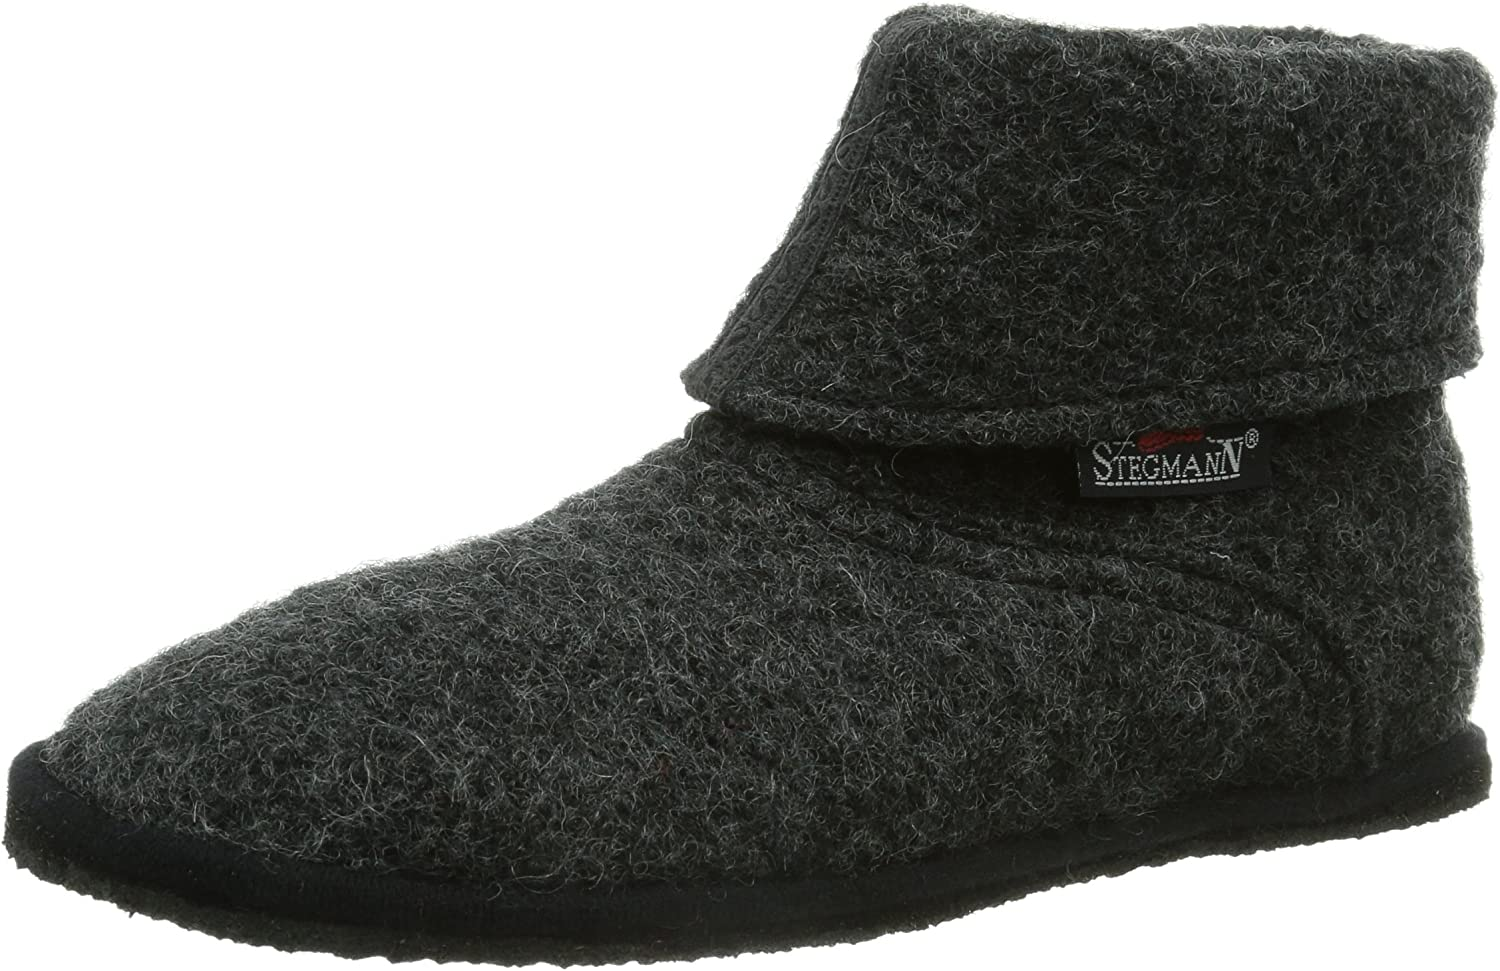 Stegmann Womens Hut shoes Anthracite